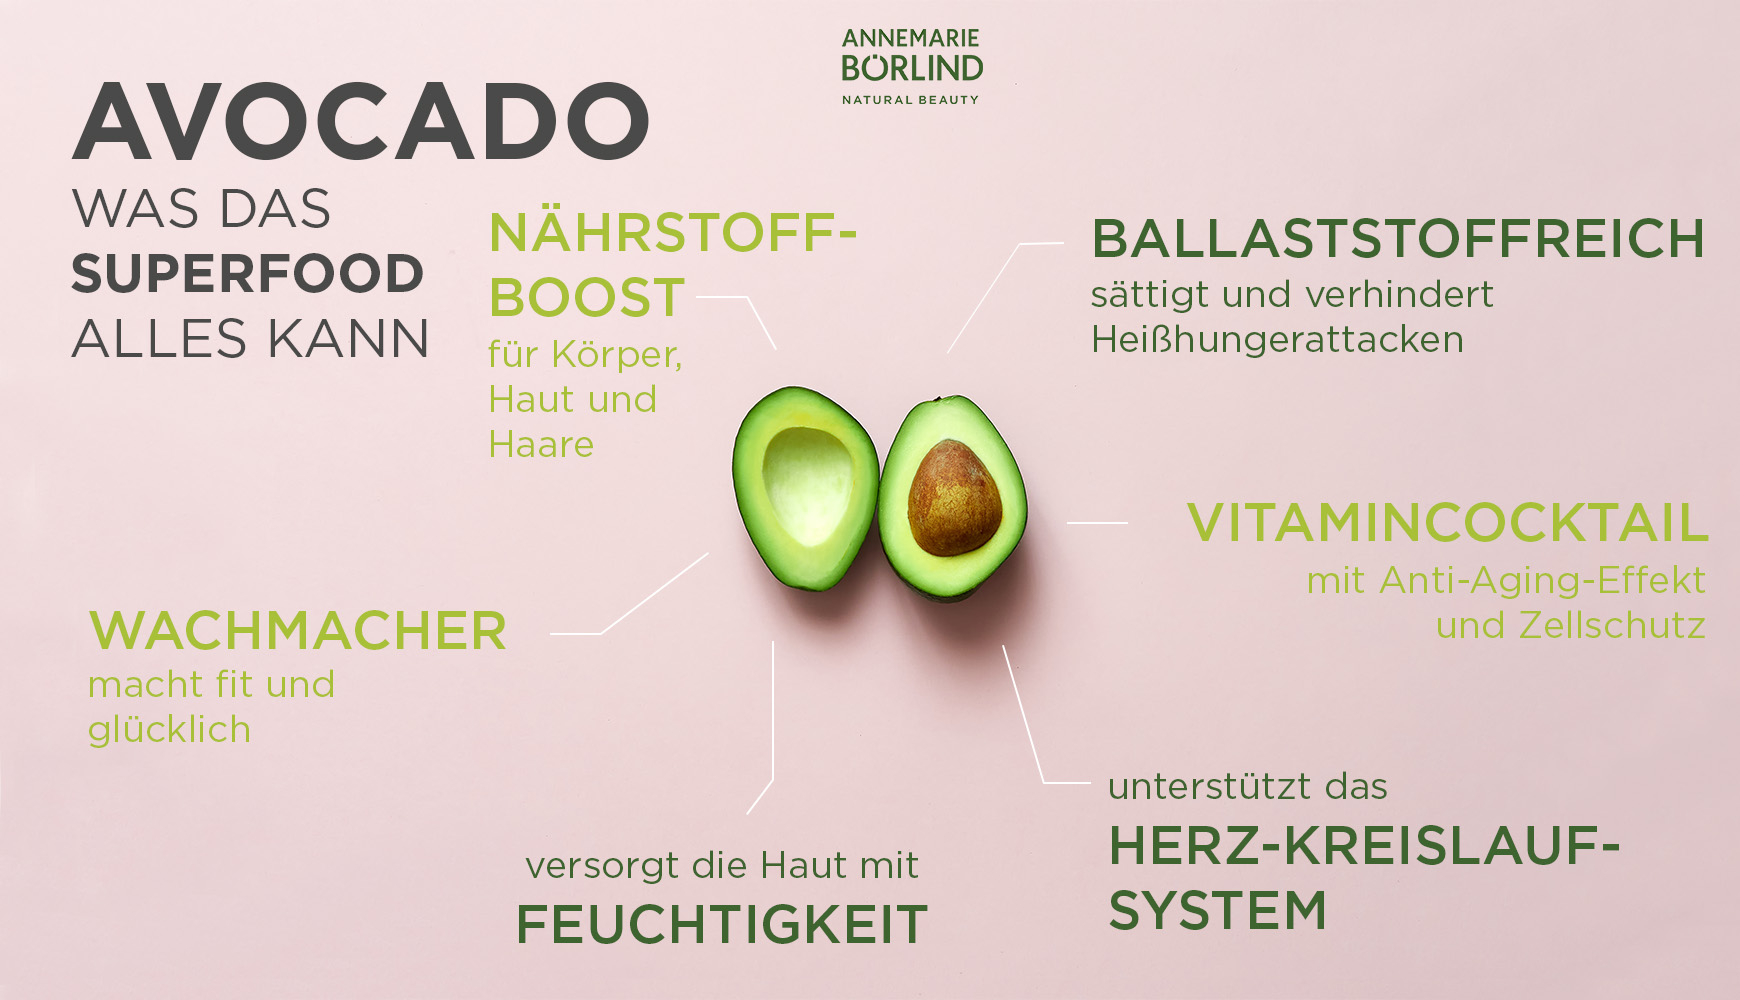 ANNEMARIE BÖRLIND Avocadoöl in Naturkosmetik